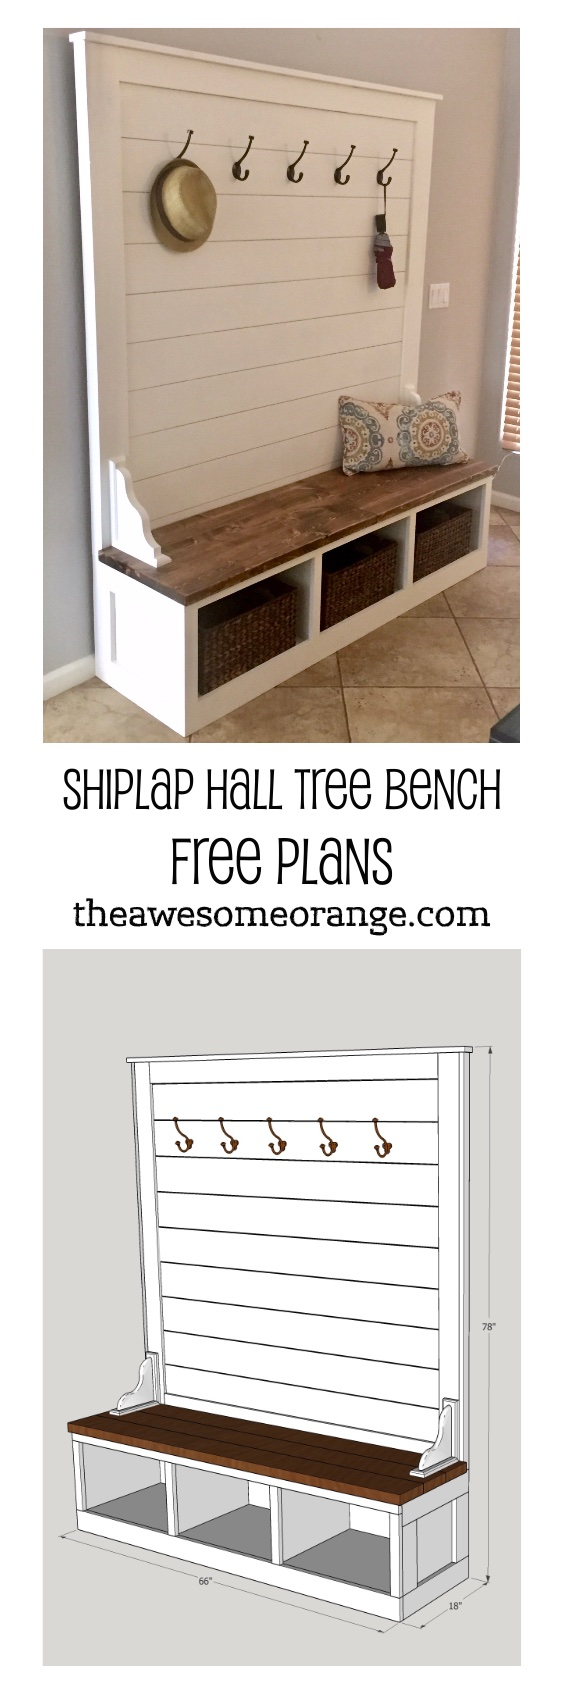 Pinterest Pin - Shiplap Hall Tree Bench.jpg